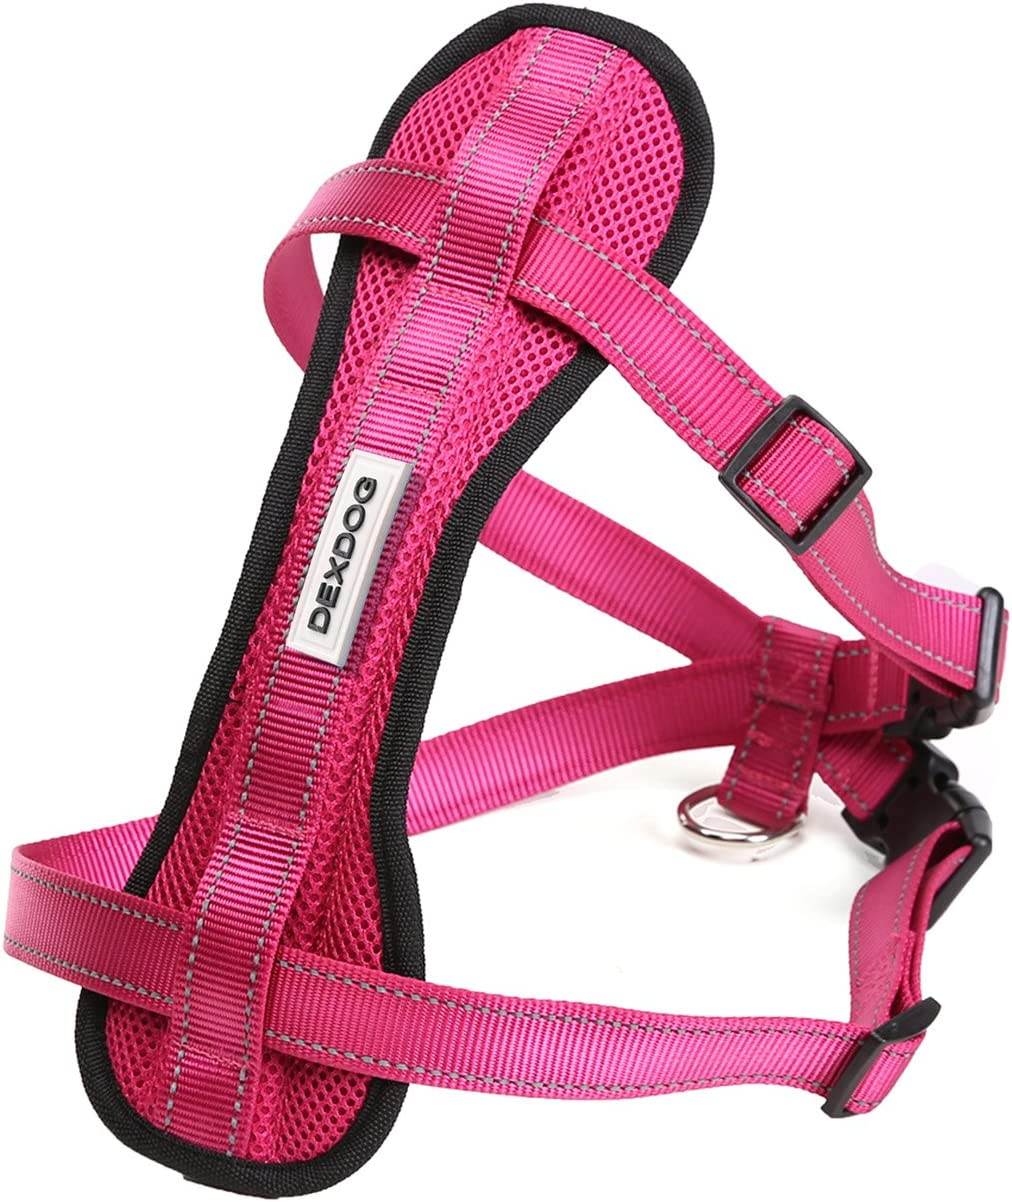 DEXDOG CHEST PLATE CAR SAFETY HARNESS